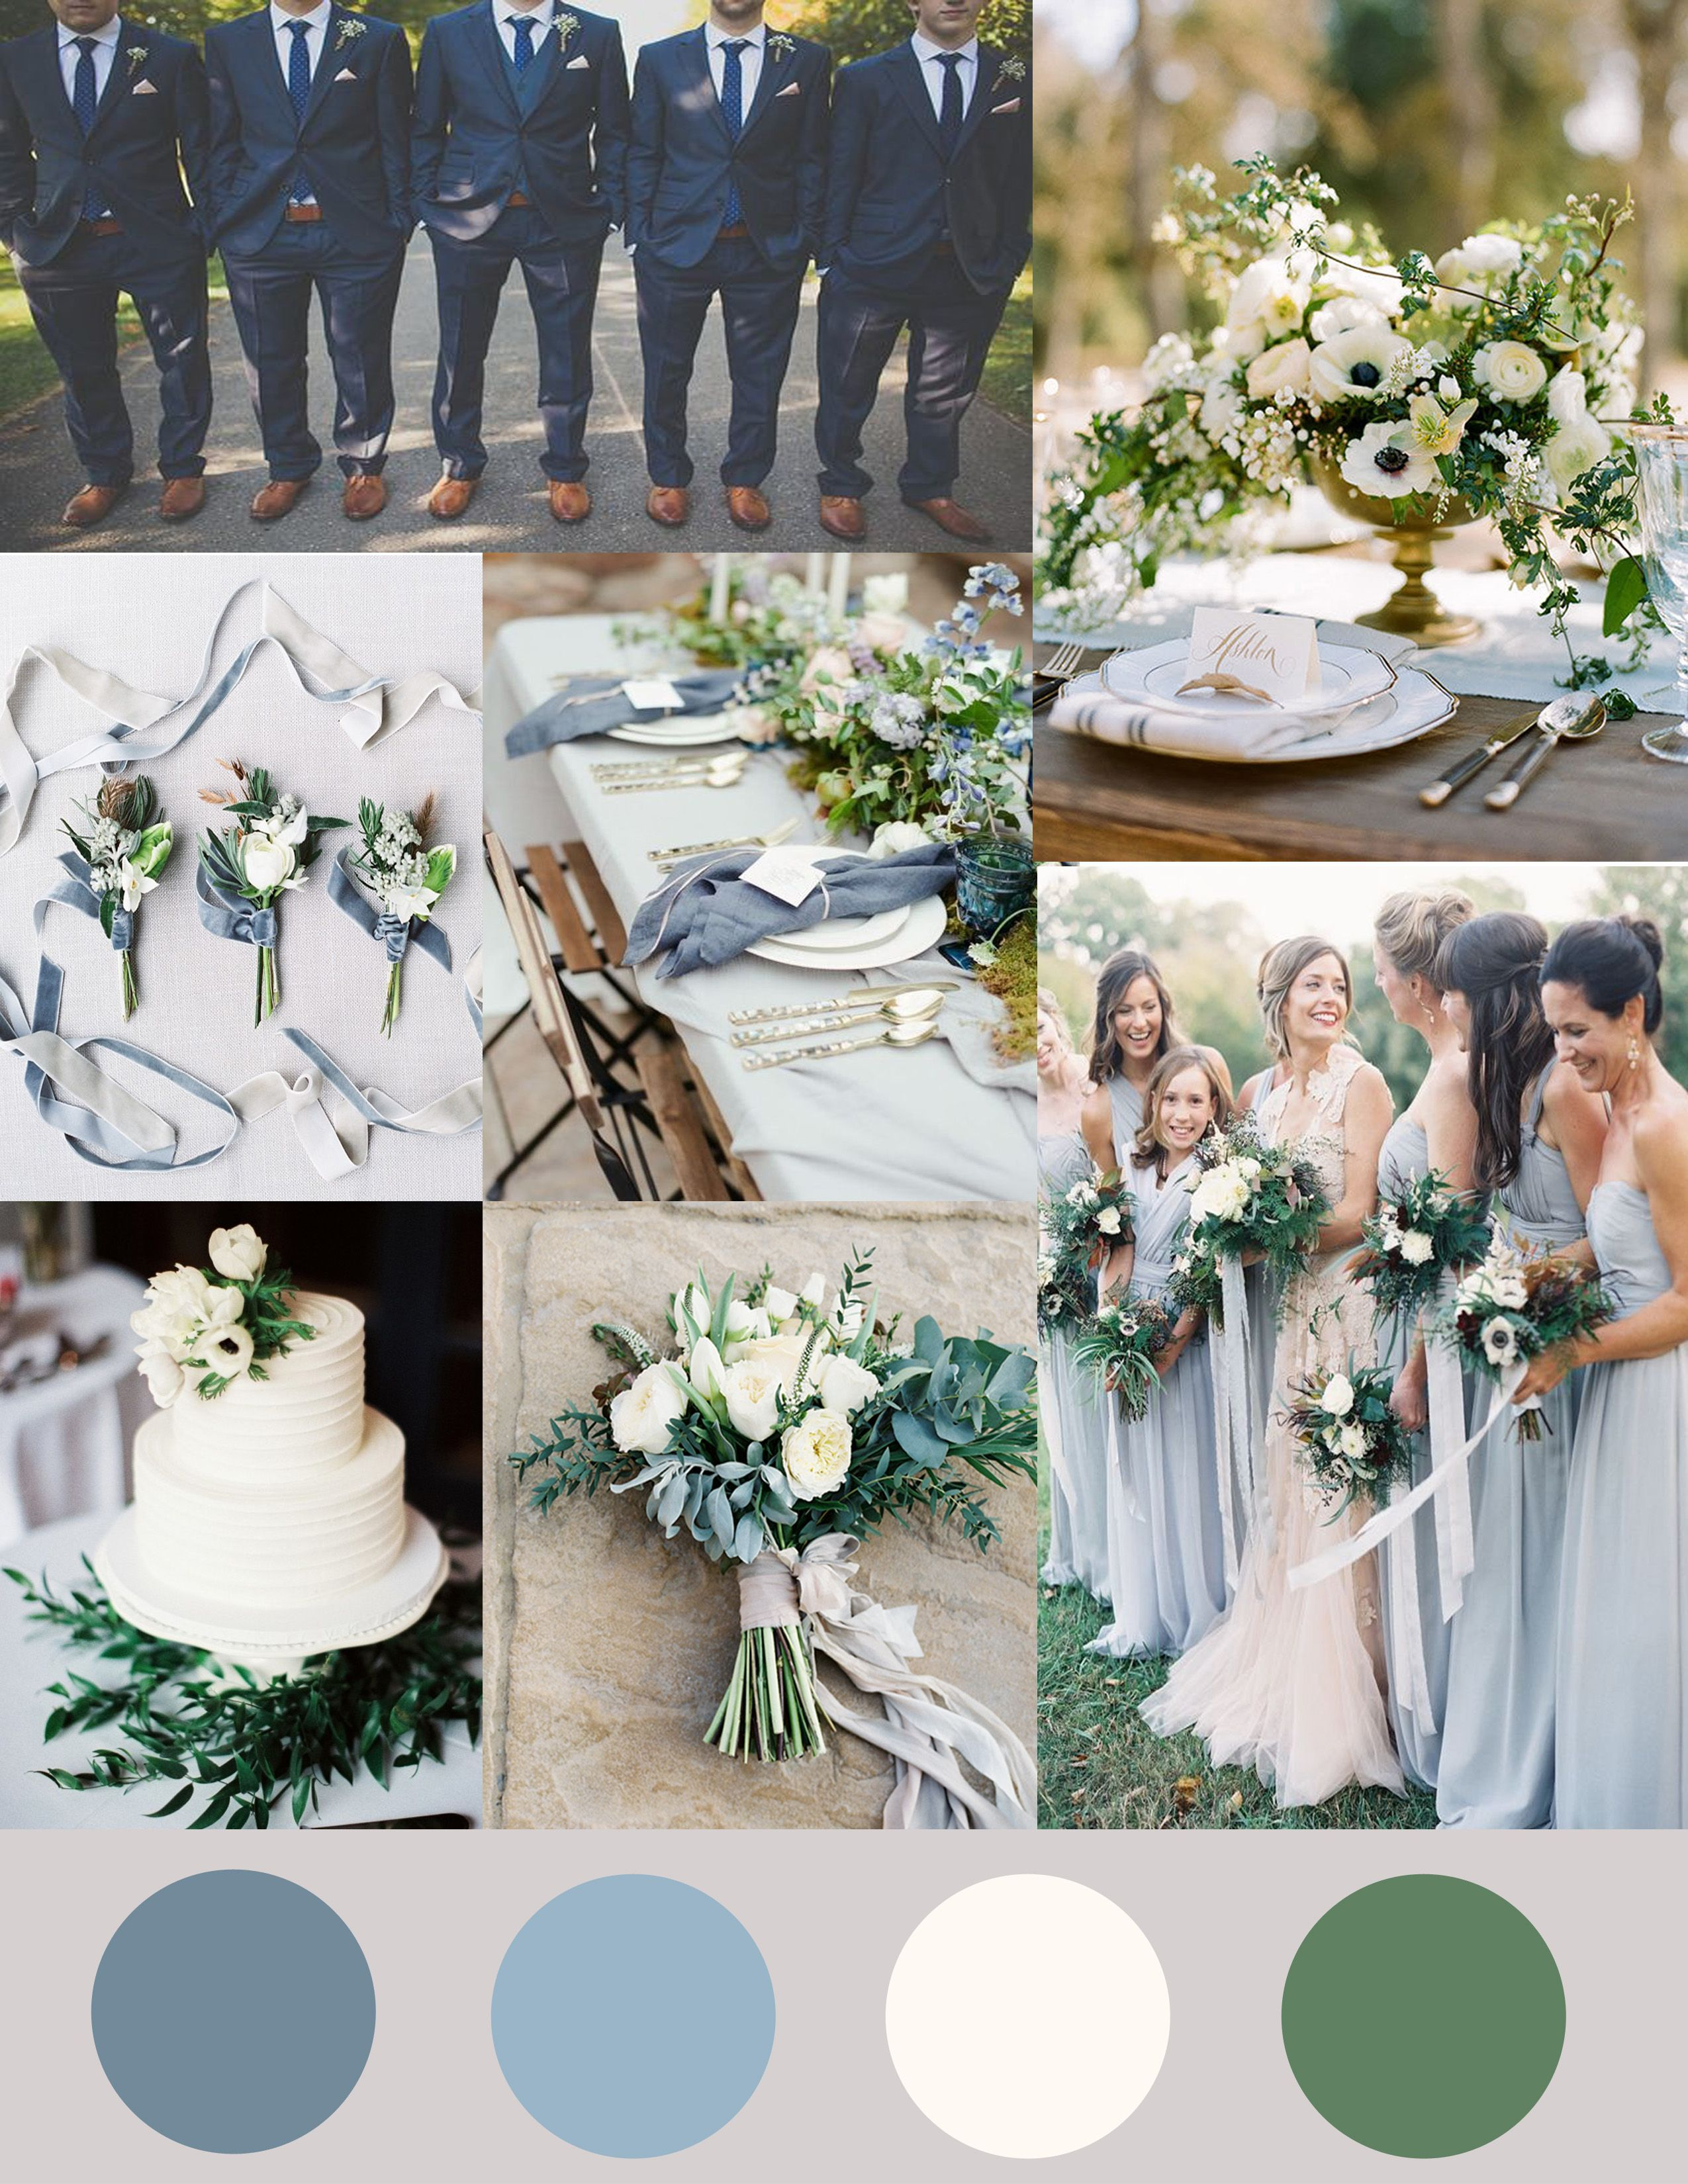 Light blue wedding decoration ideas  Shades of Dusty Blue Ivory and Greenery Wedding  wedding thoughts